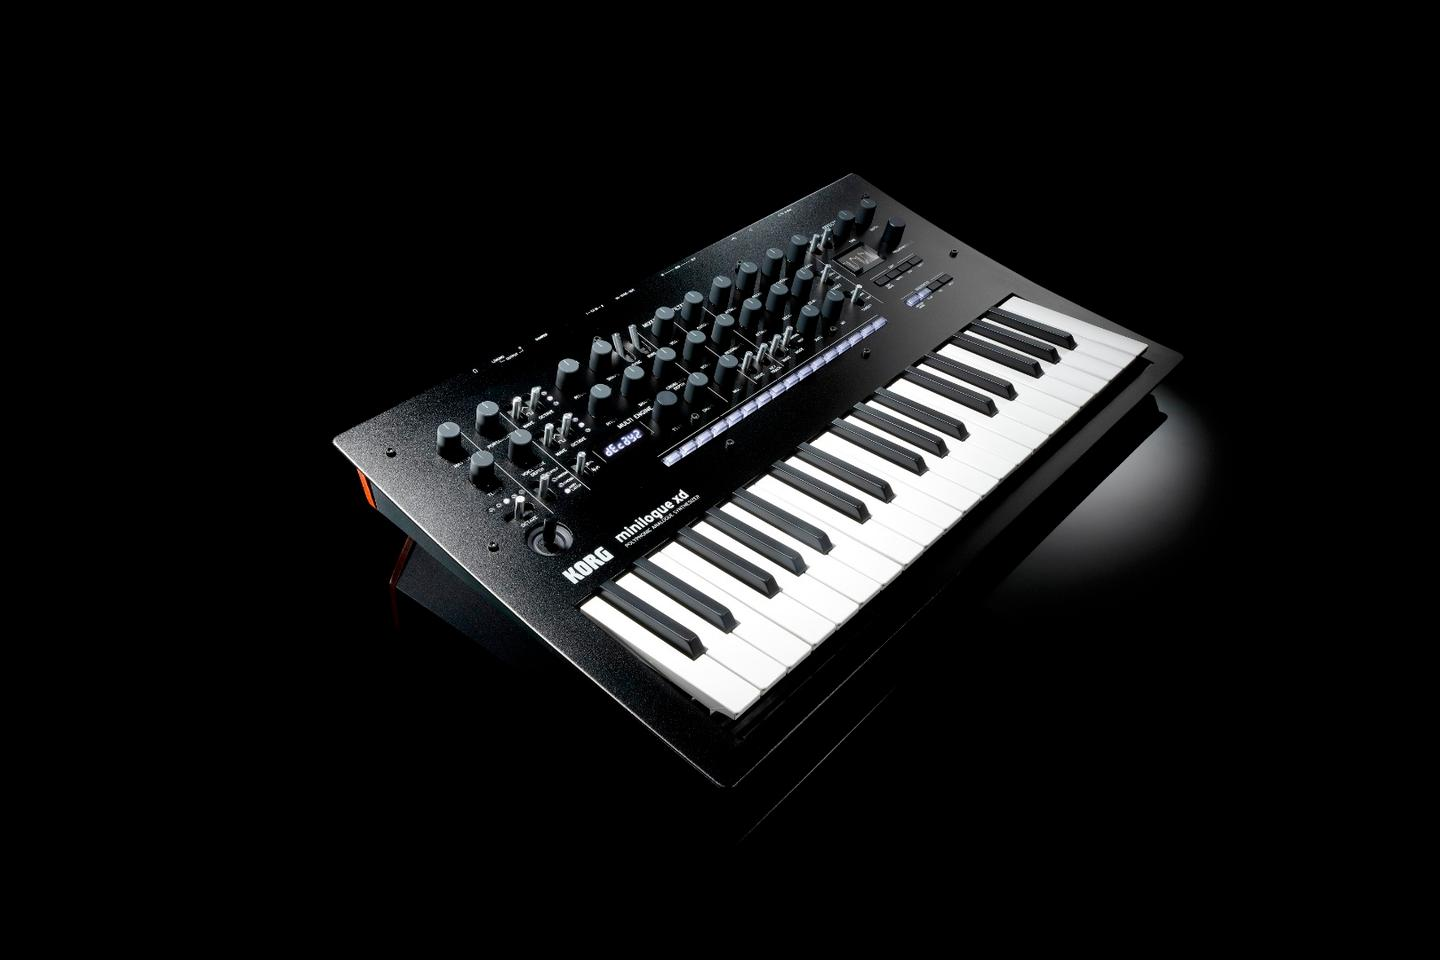 The minilogue xd next-generation analog synthesizer from Korg